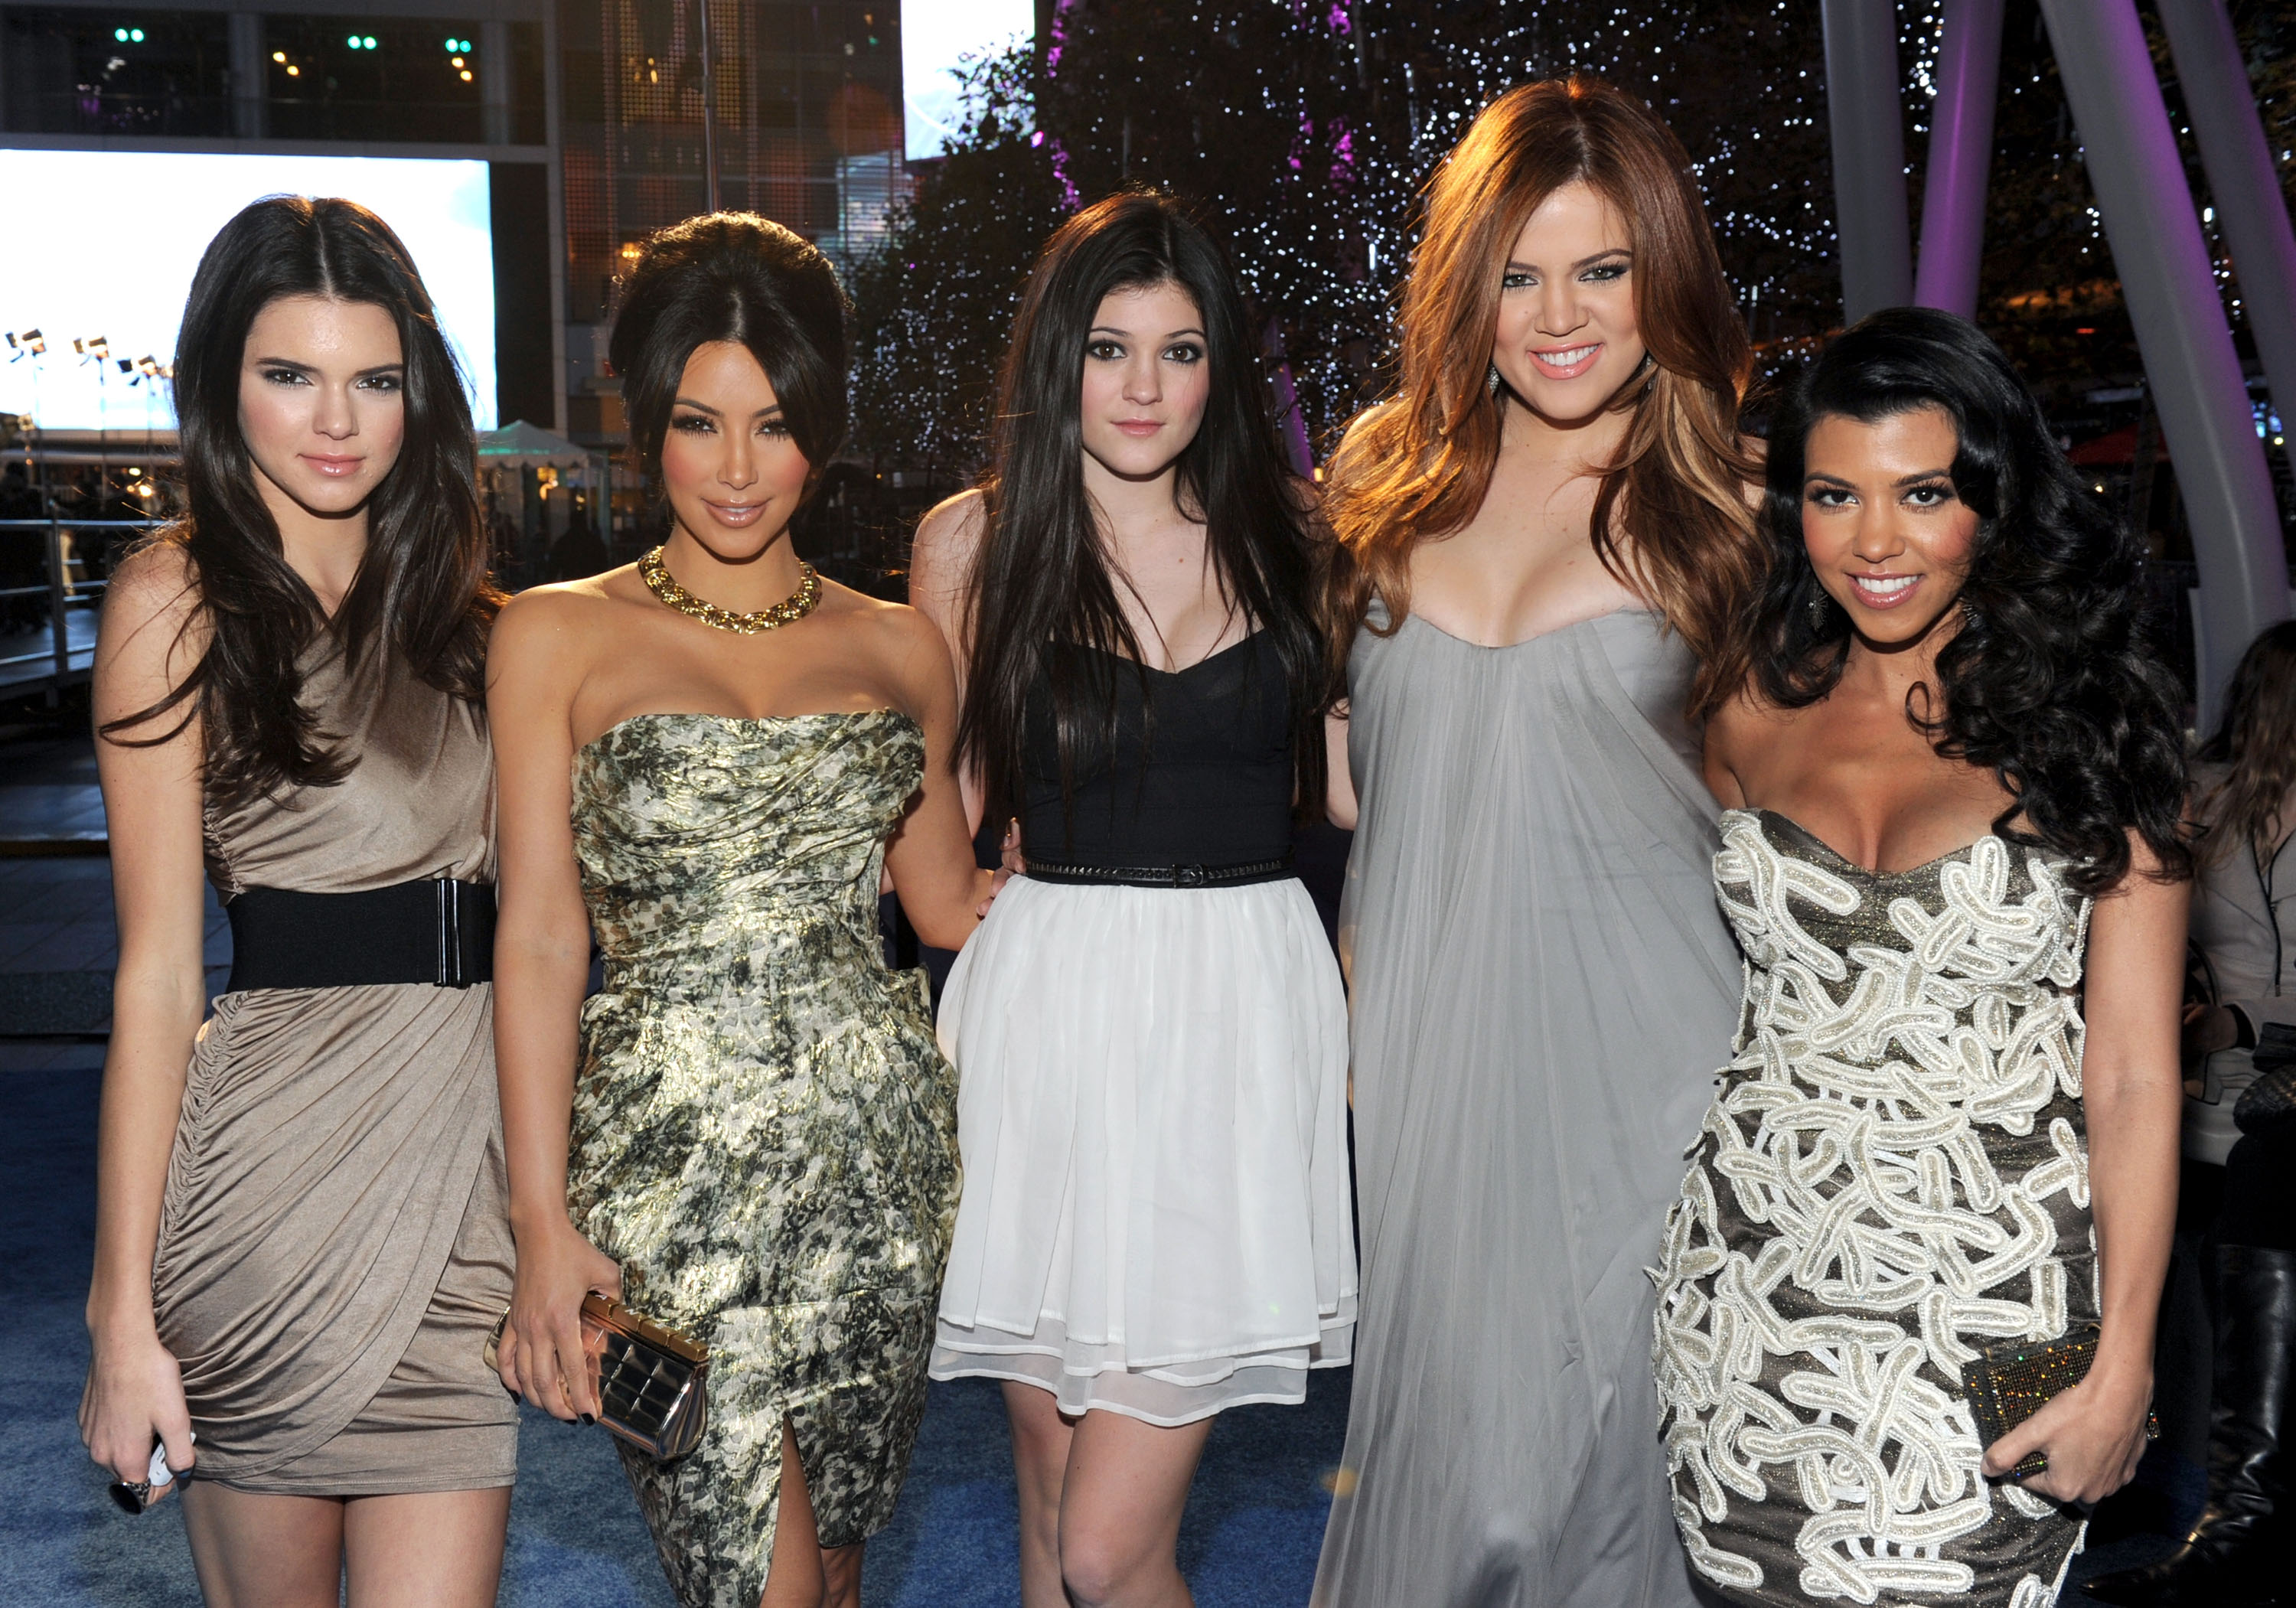 LOS ANGELES, CA - JANUARY 05: (L-R) Kendall Jenner, Kim Kardashian, Kylie Jenner, Khloe Kardashian and Kourtney Kardashian arrive at the 2011 People's Choice Awards at Nokia Theatre L.A. Live on January 5, 2011 in Los Angeles, California. (Photo by Frazer Harrison/Getty Images for PCA)